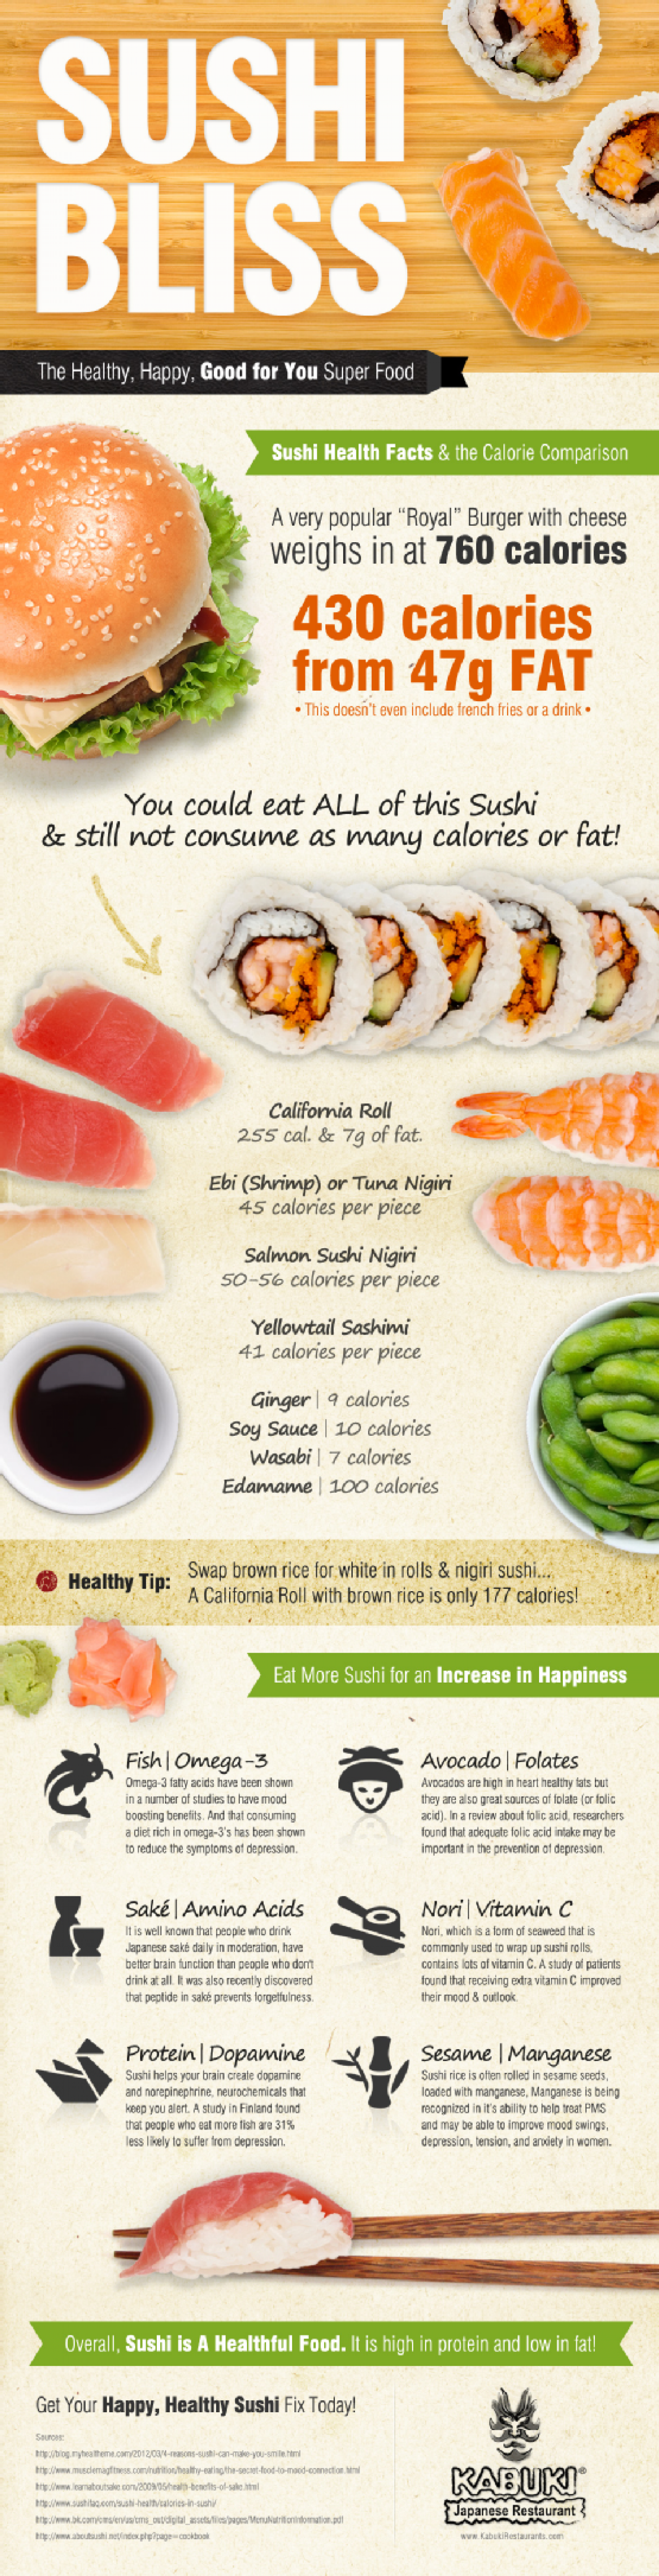 The Surprising Health Benefits of Sushi Infographic